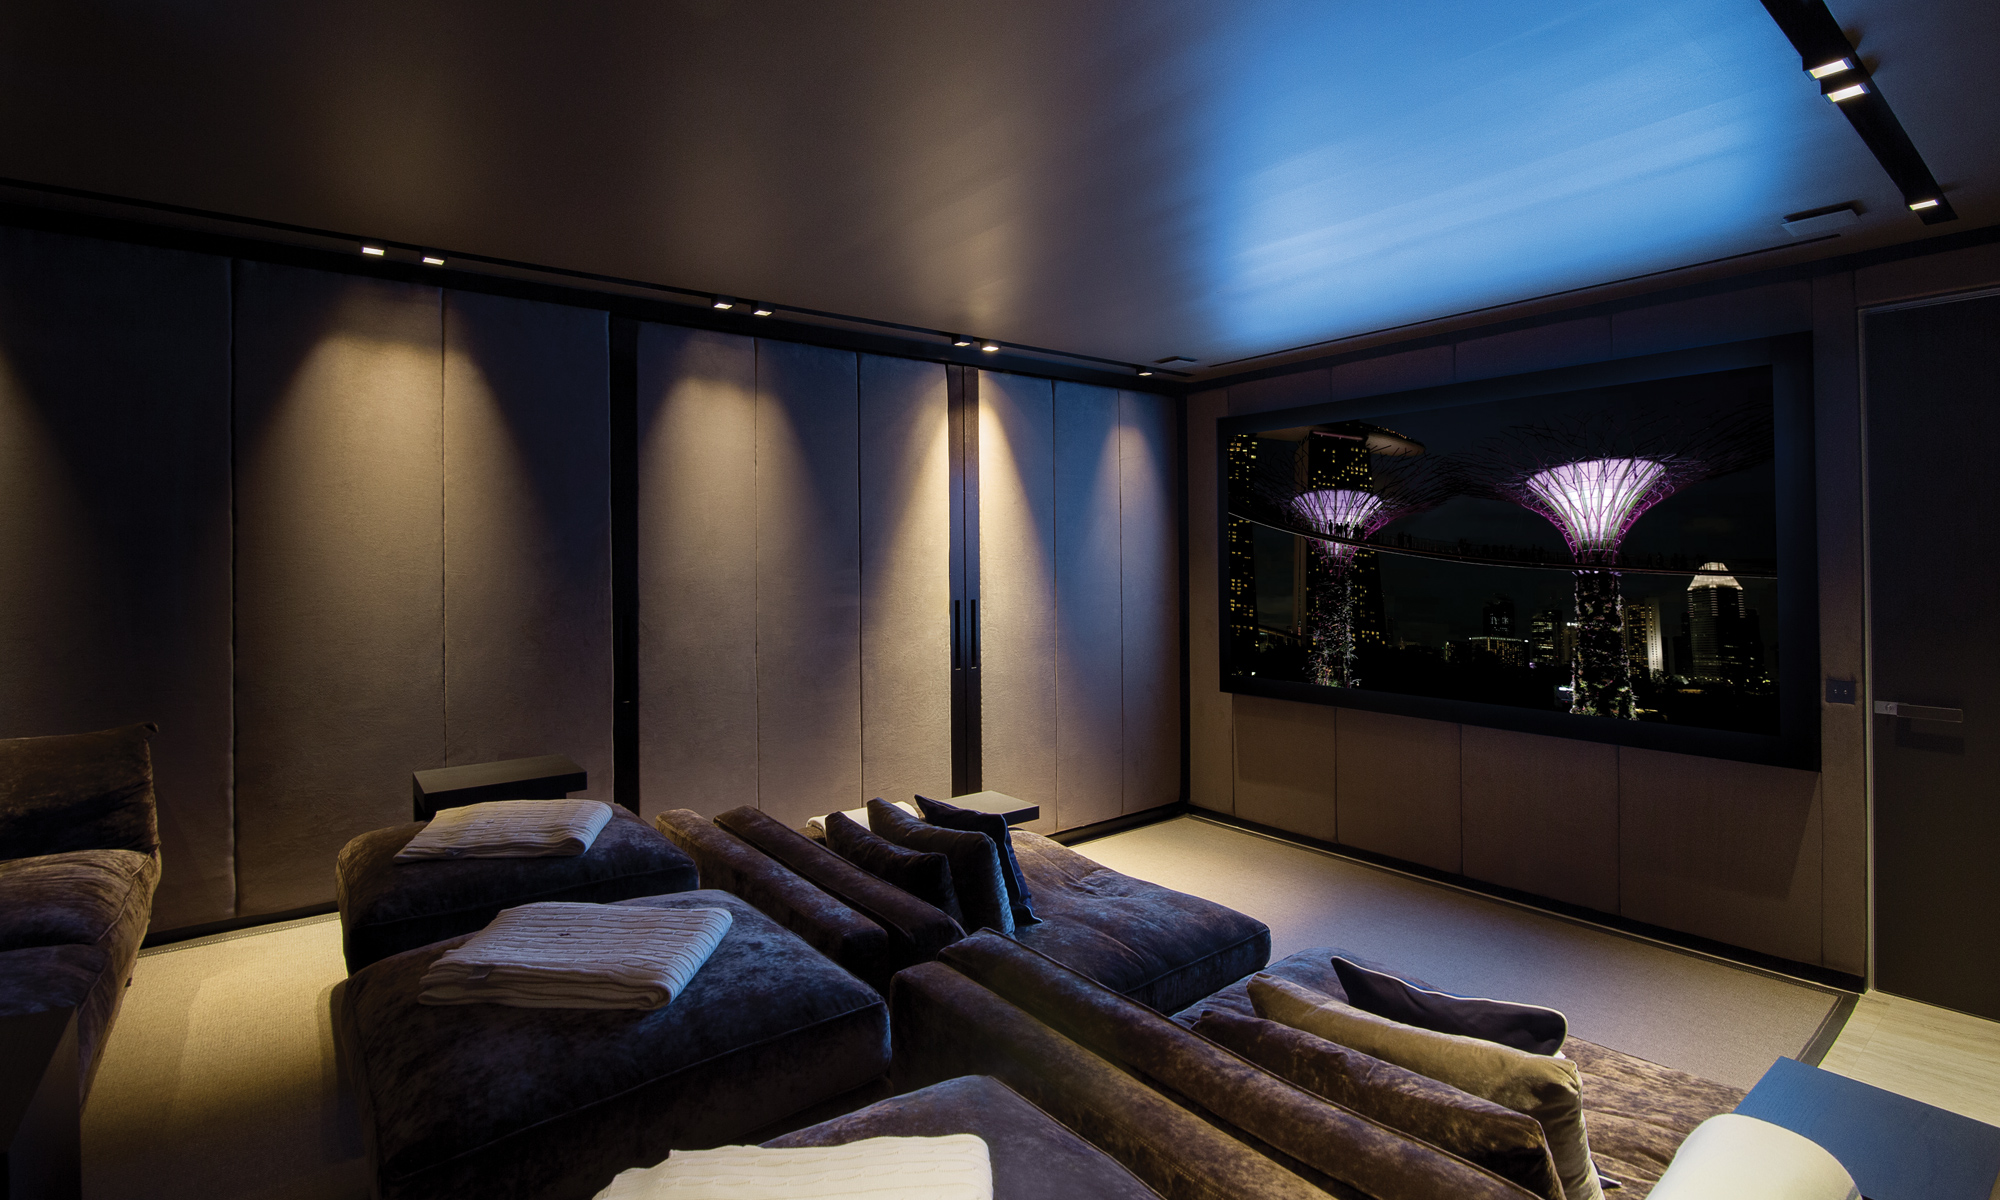 Enjoy the latest releases within your own private cinema.